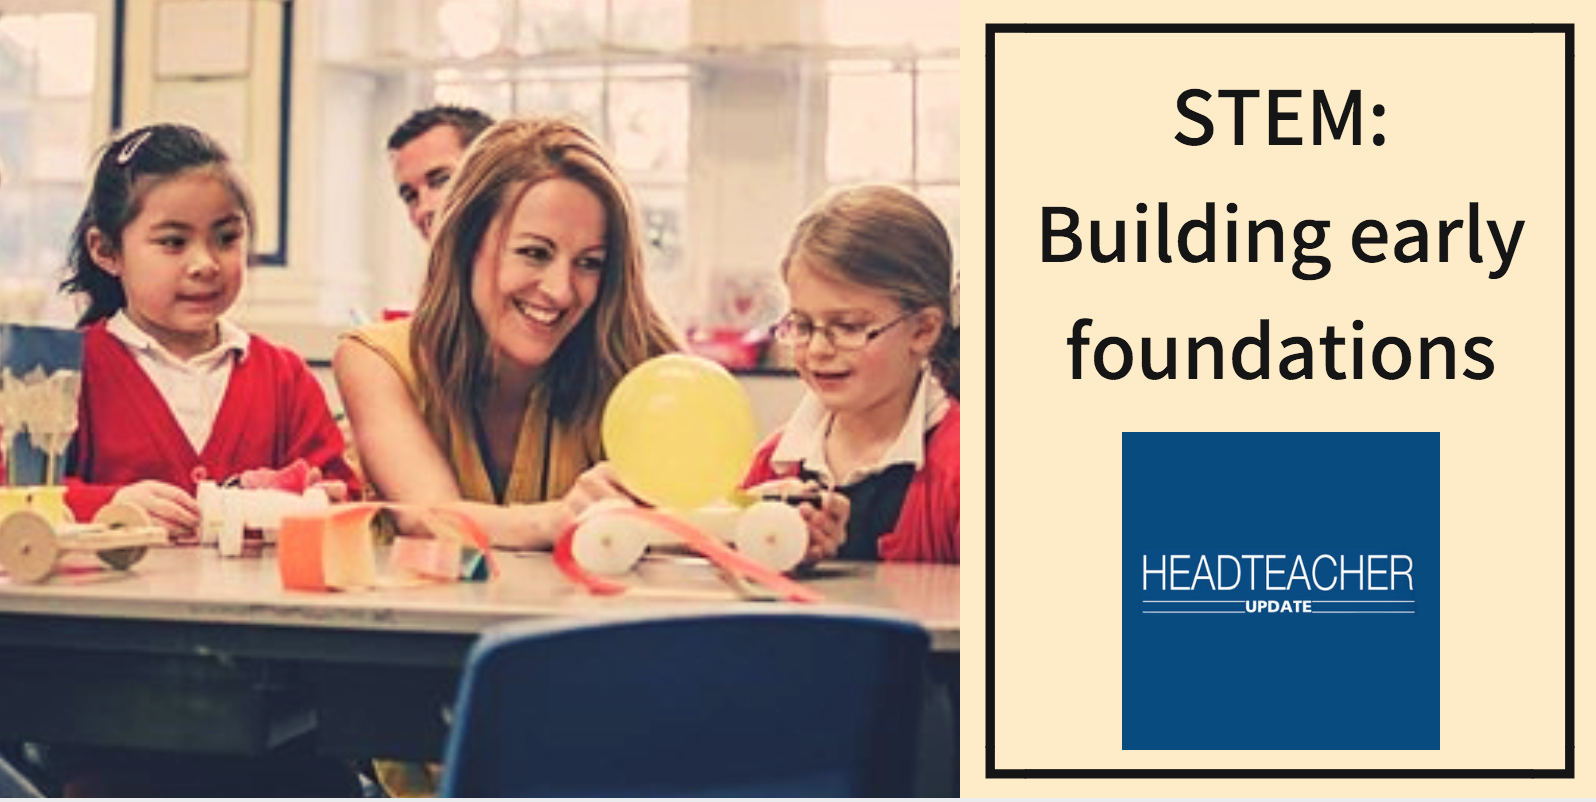 stem: building early foundations